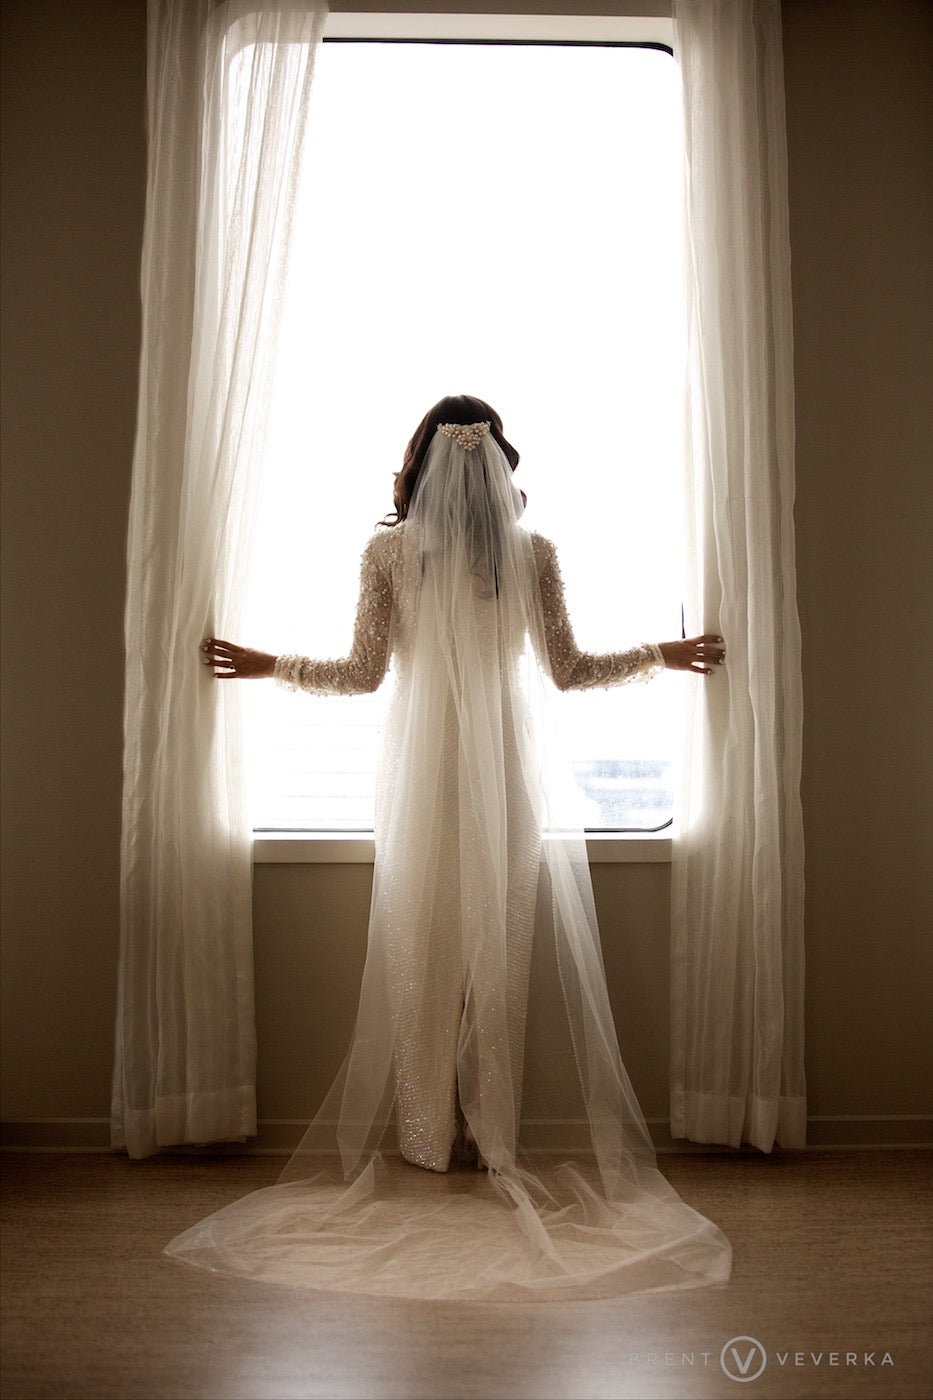 Bride in Window | Glam Speakeasy Wedding | Brent Veverka Media